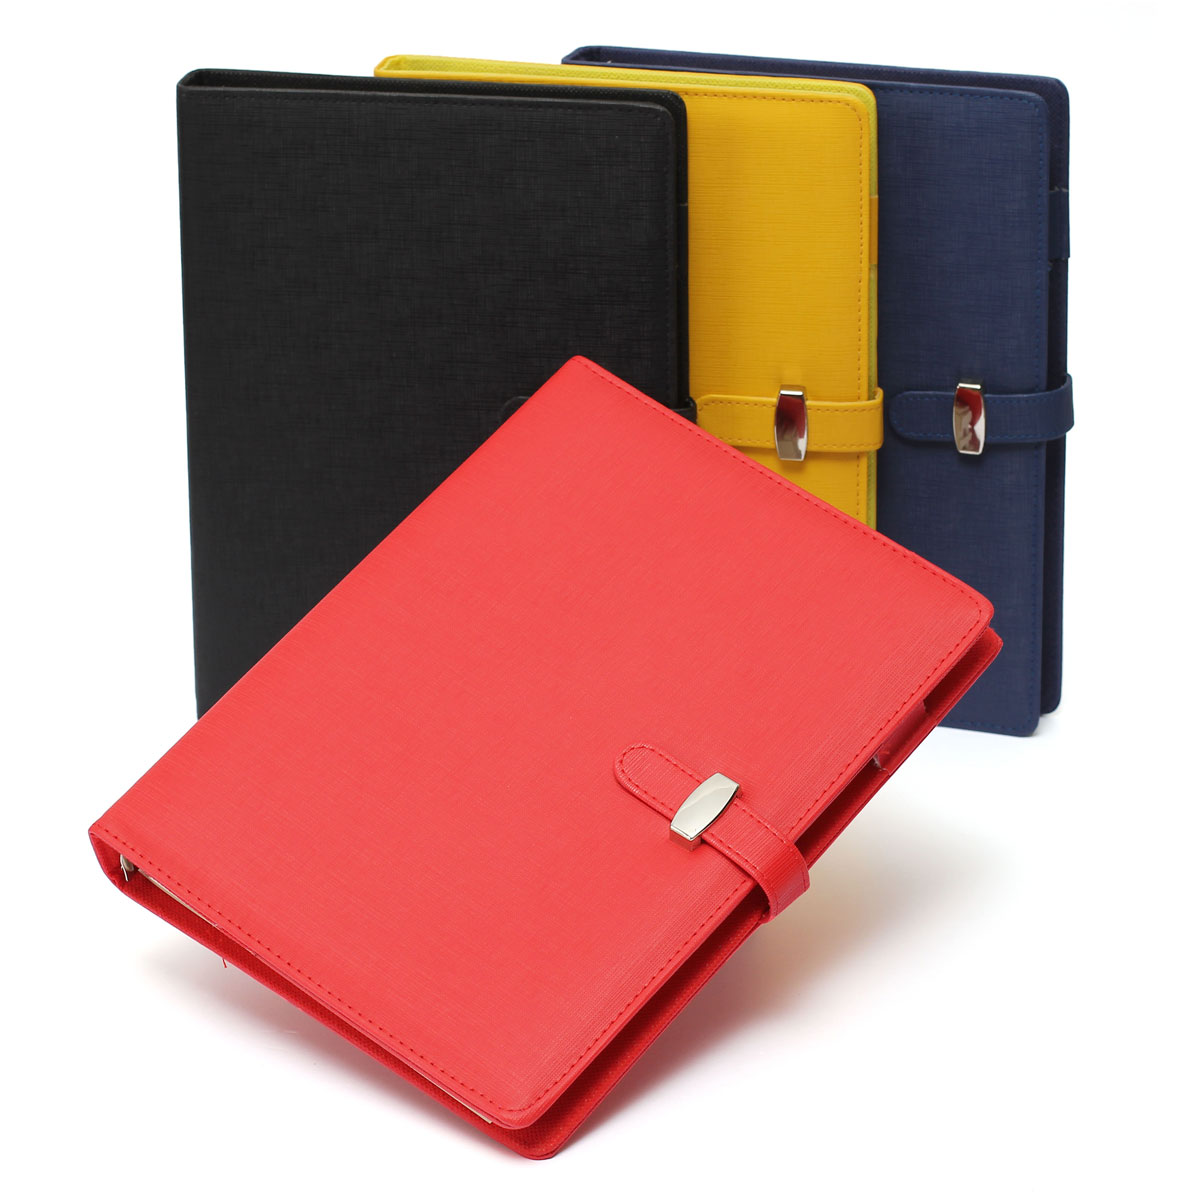 Modern Design B5 Personal Pockets Organiser Planner PU Leather Cover Filofax Diary Notebook Spiral Fit For Office Student(China (Mainland))